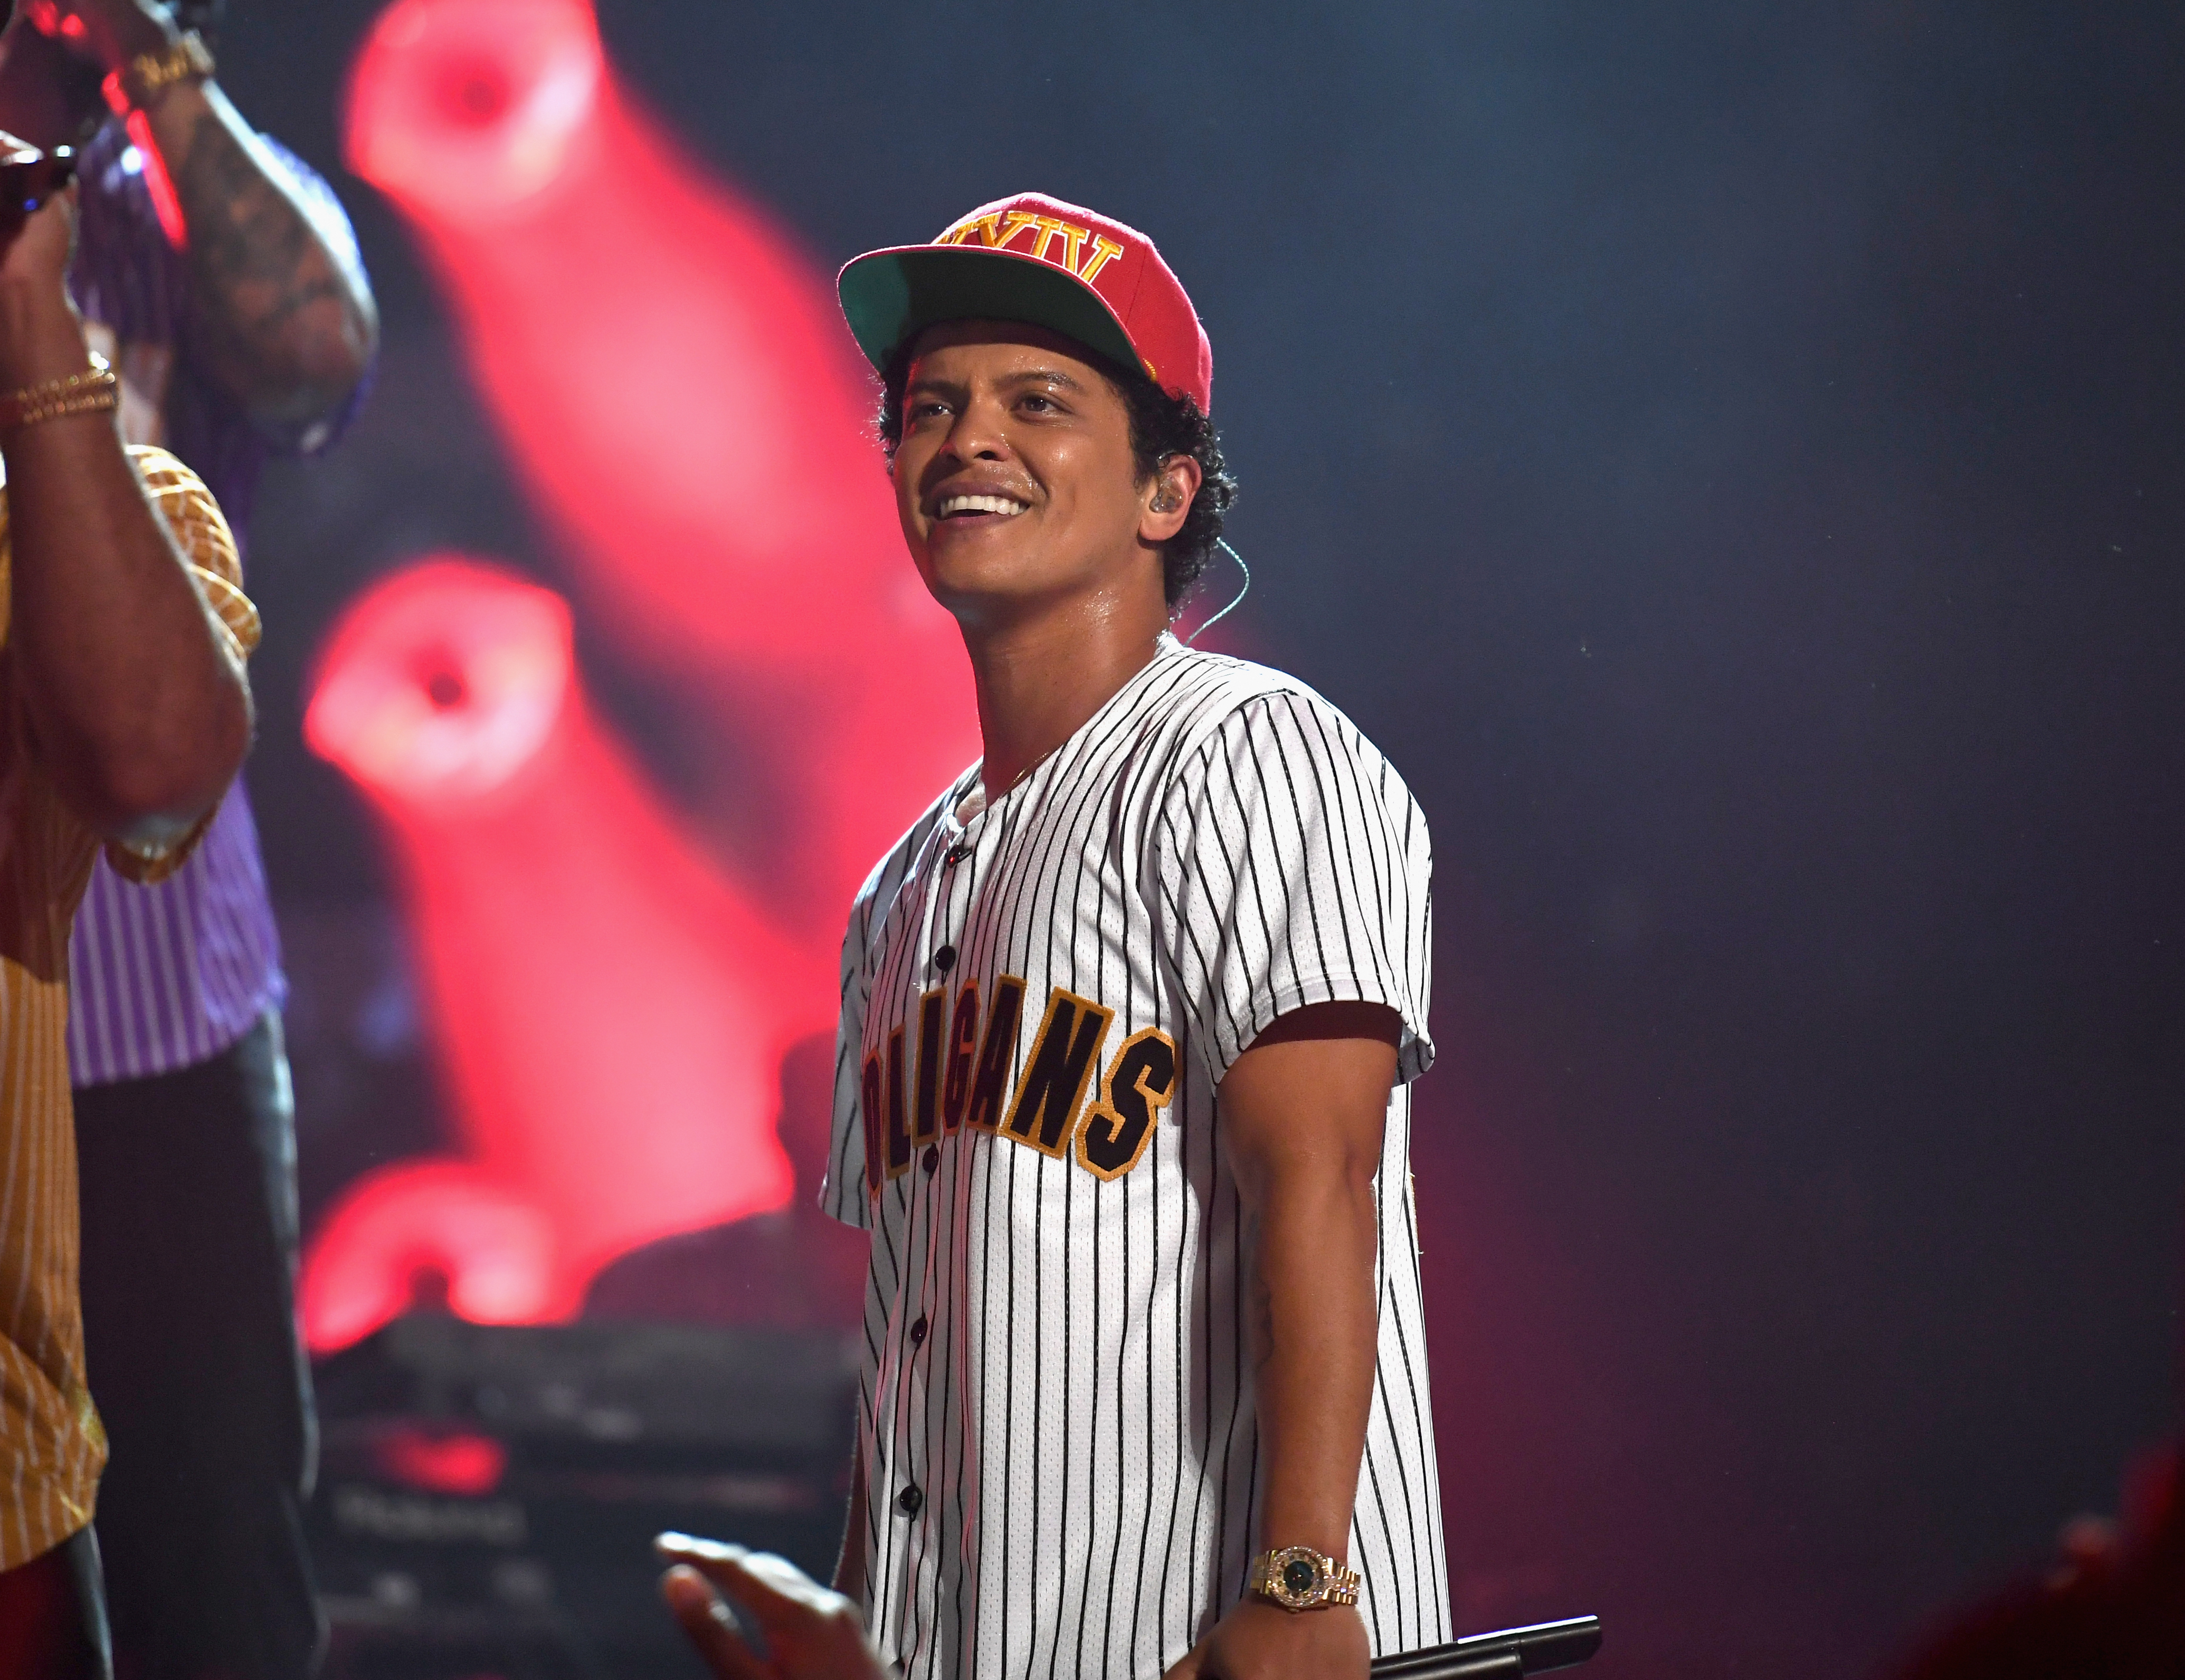 499f66128065 Bruno Mars Strips Down 'That's What I Like' on 'Charlie Rose' – Rolling  Stone